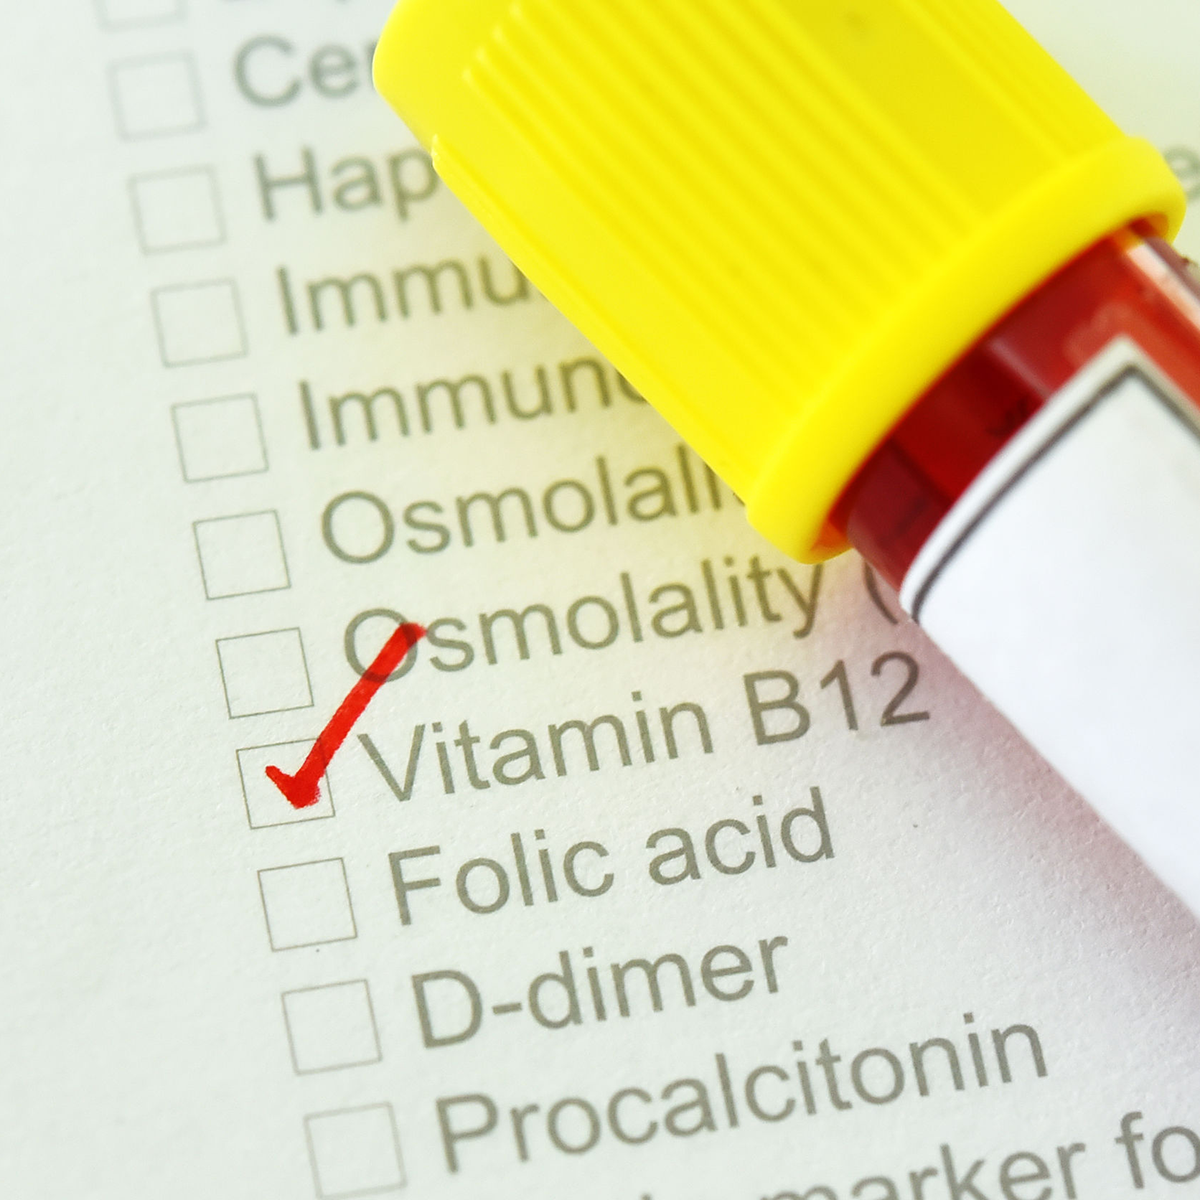 Image of checklist showing Vitamin B12 needed